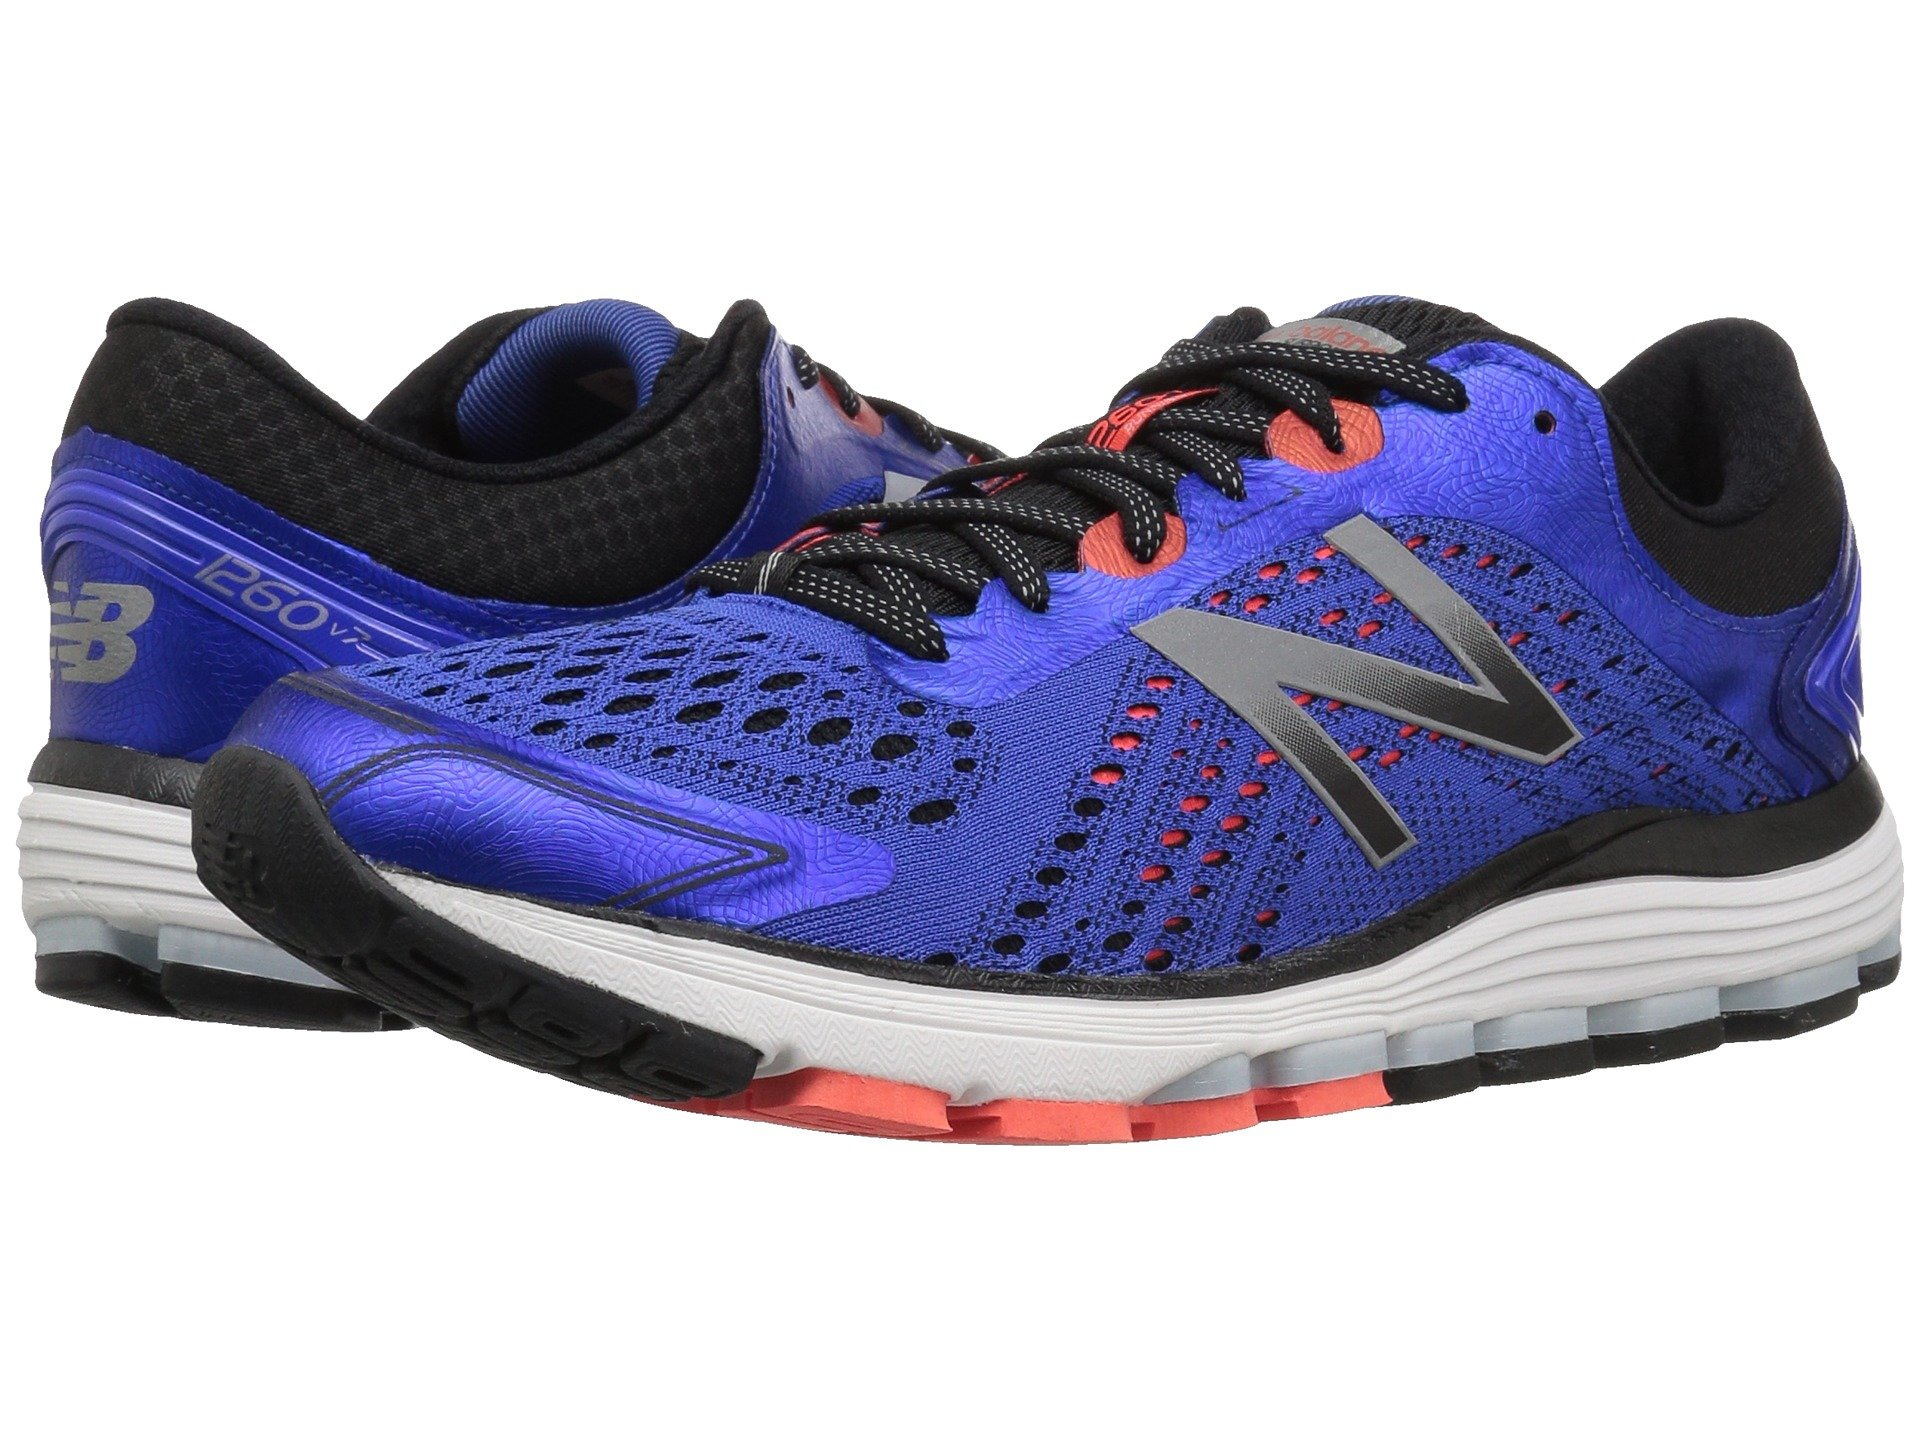 980197617afb1 Top Ten Running Shoes for Plus-Size Runners | Zappos.com